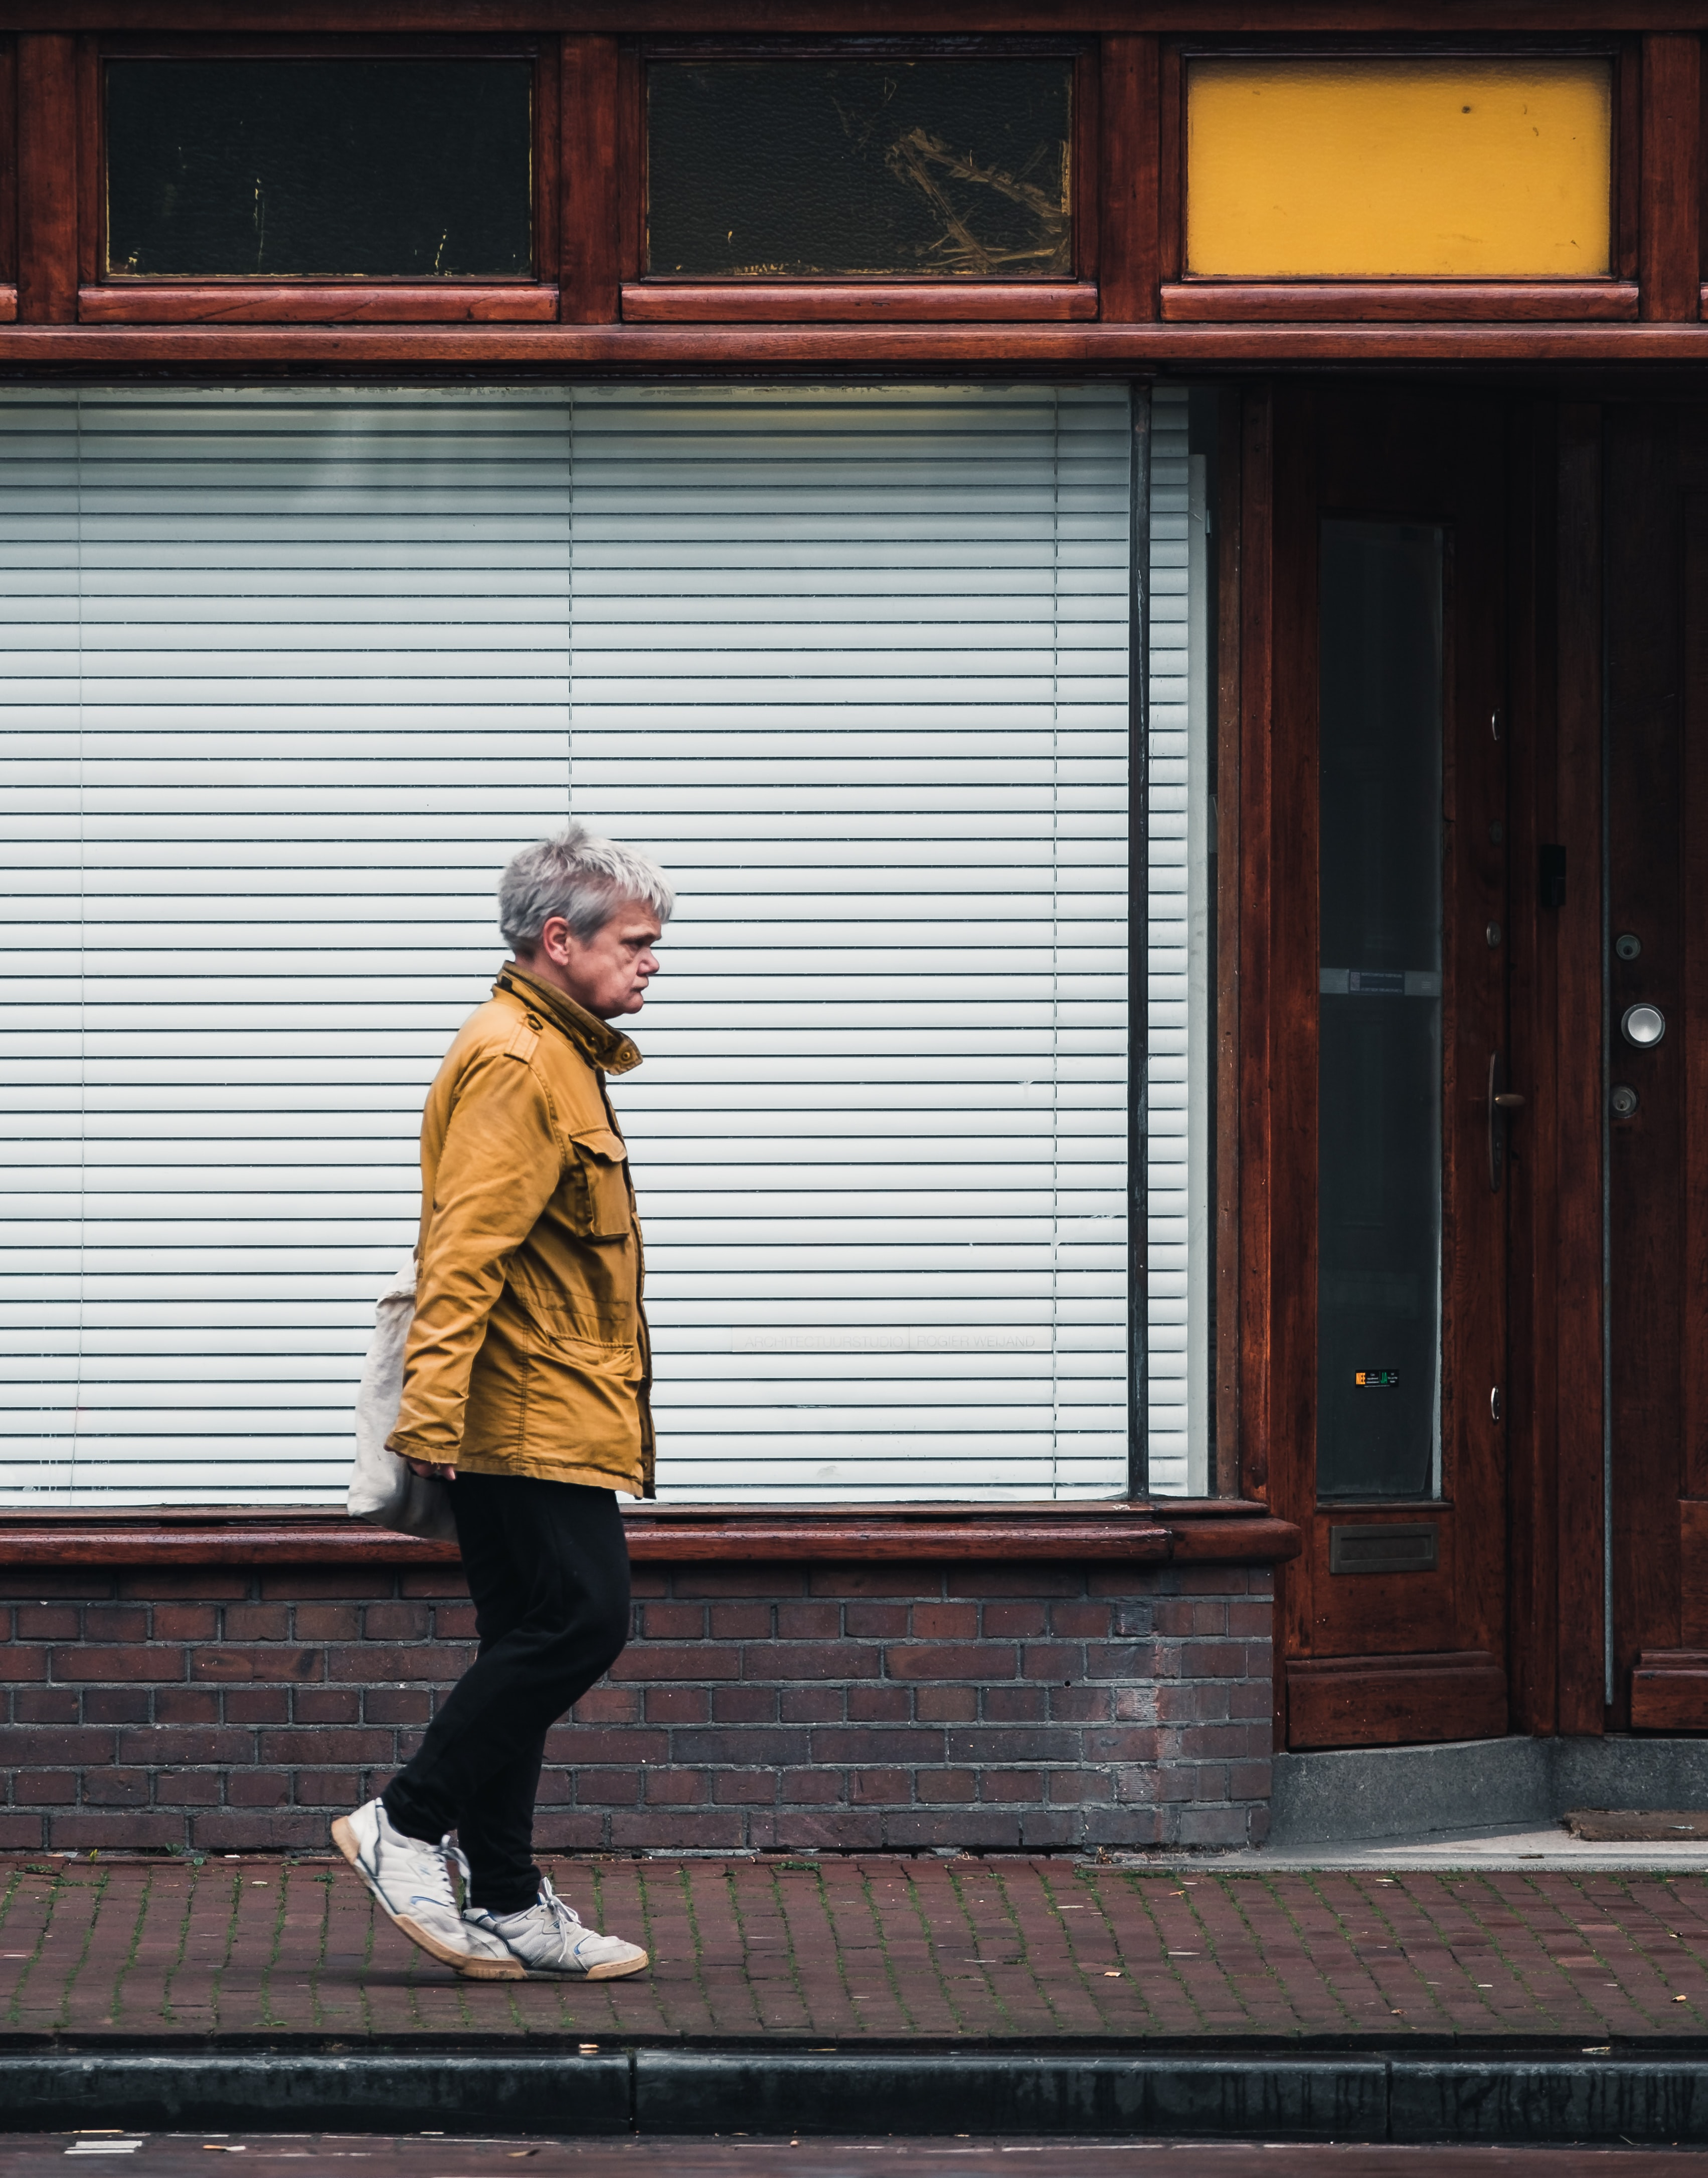 man walking in front of store